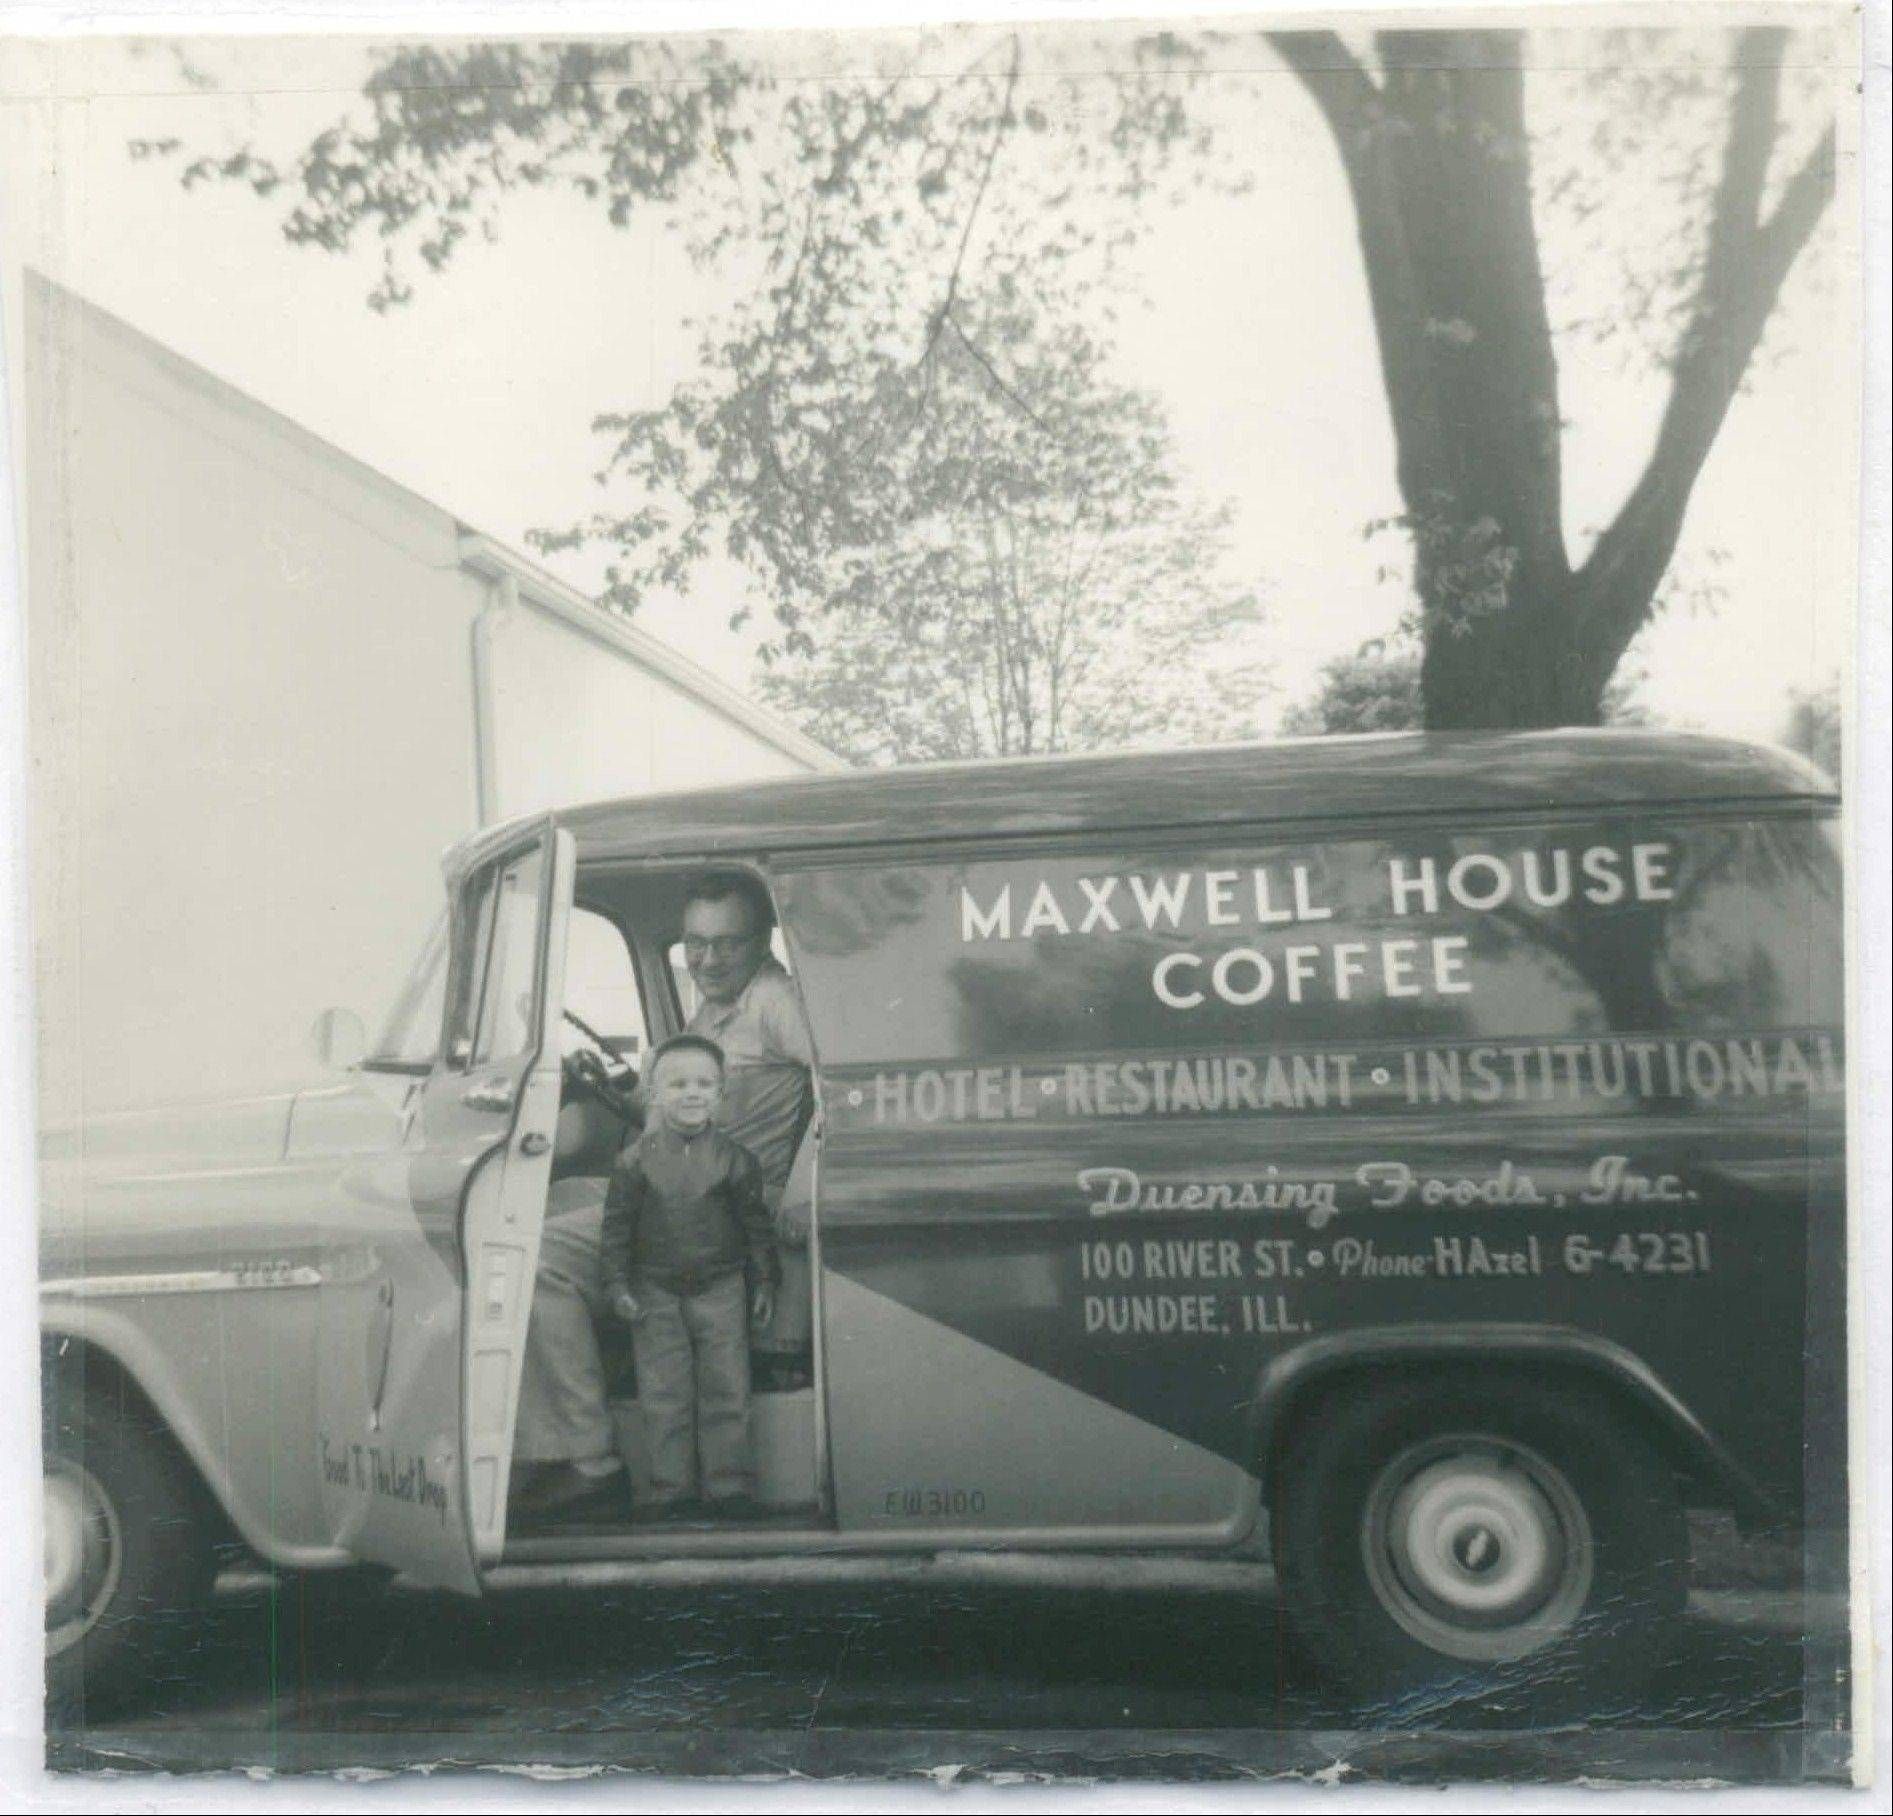 Don Duensing shows his then 3-year-old son Tom life on the road as a food distributor back in 1956.